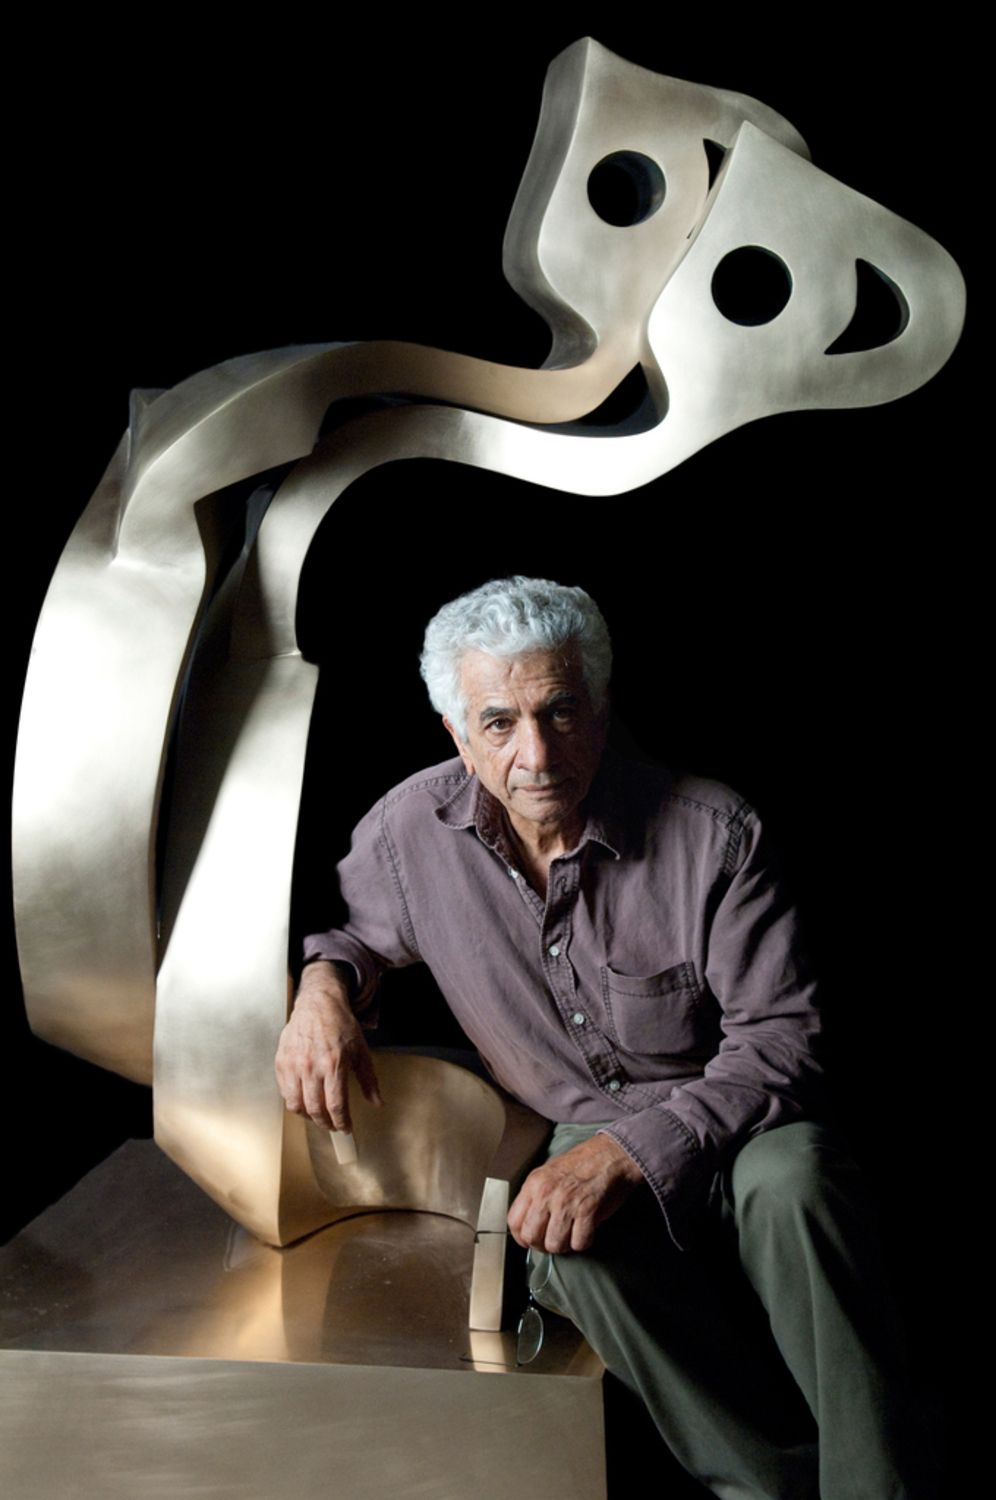 THE DAVIS MUSEUM AT WELLESLEY COLLEGE  PRESENTS THE FIRST U.S. SOLO MUSEUM EXHIBITION  of  IRANIAN ARTIST PARVIZ TANAVOLI